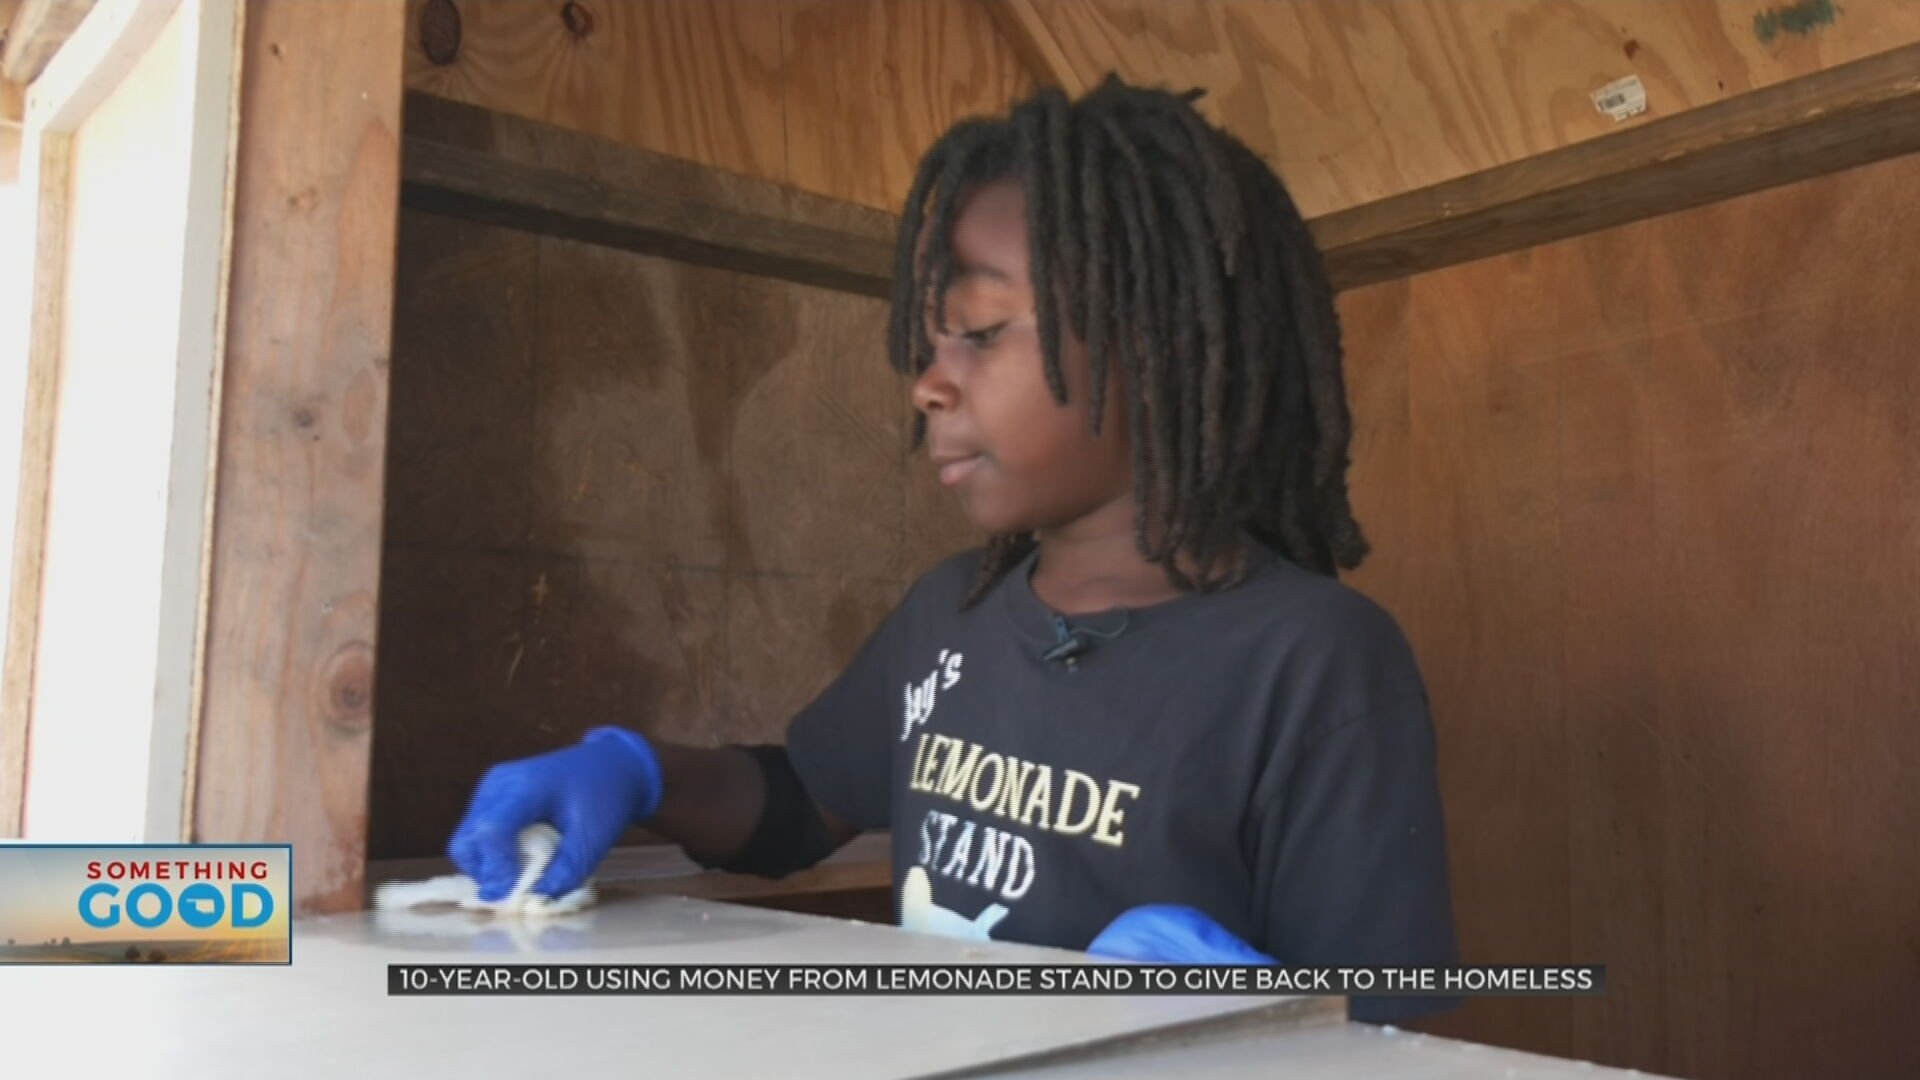 10-Year-Old Donates Lemonade Stand Sales To Homeless In Need